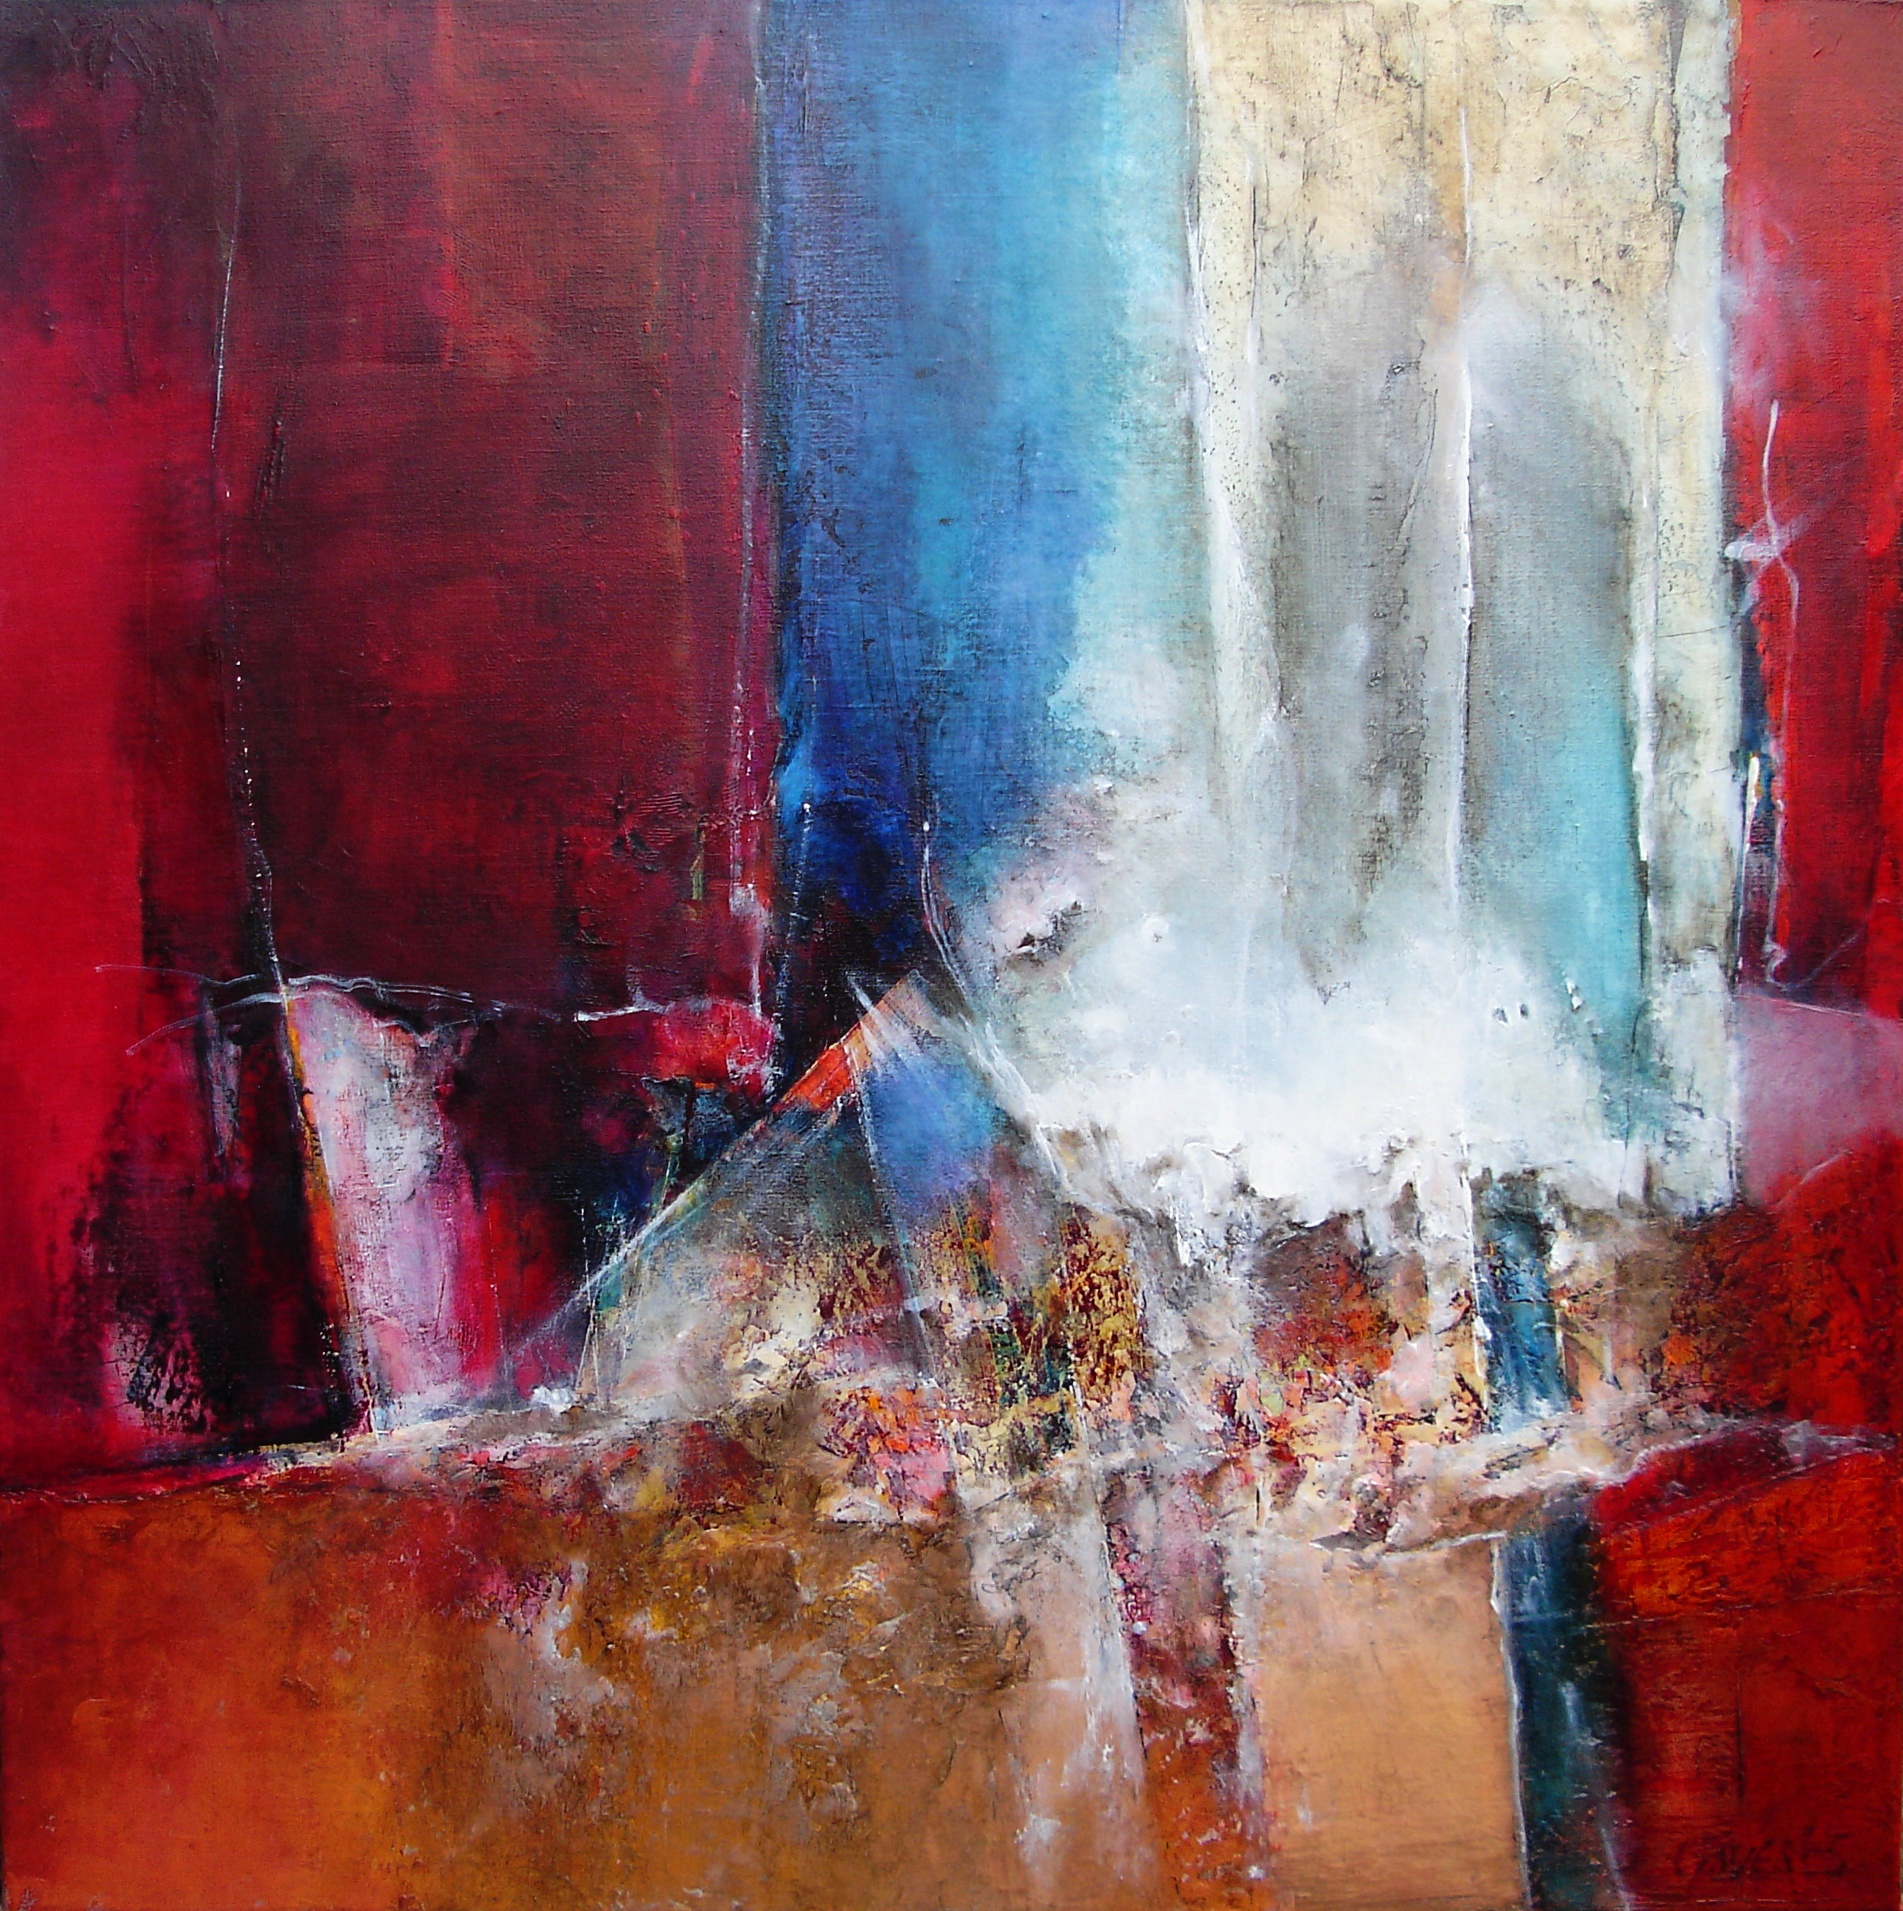 signe-de-vie-100x100cm-oil on canvas